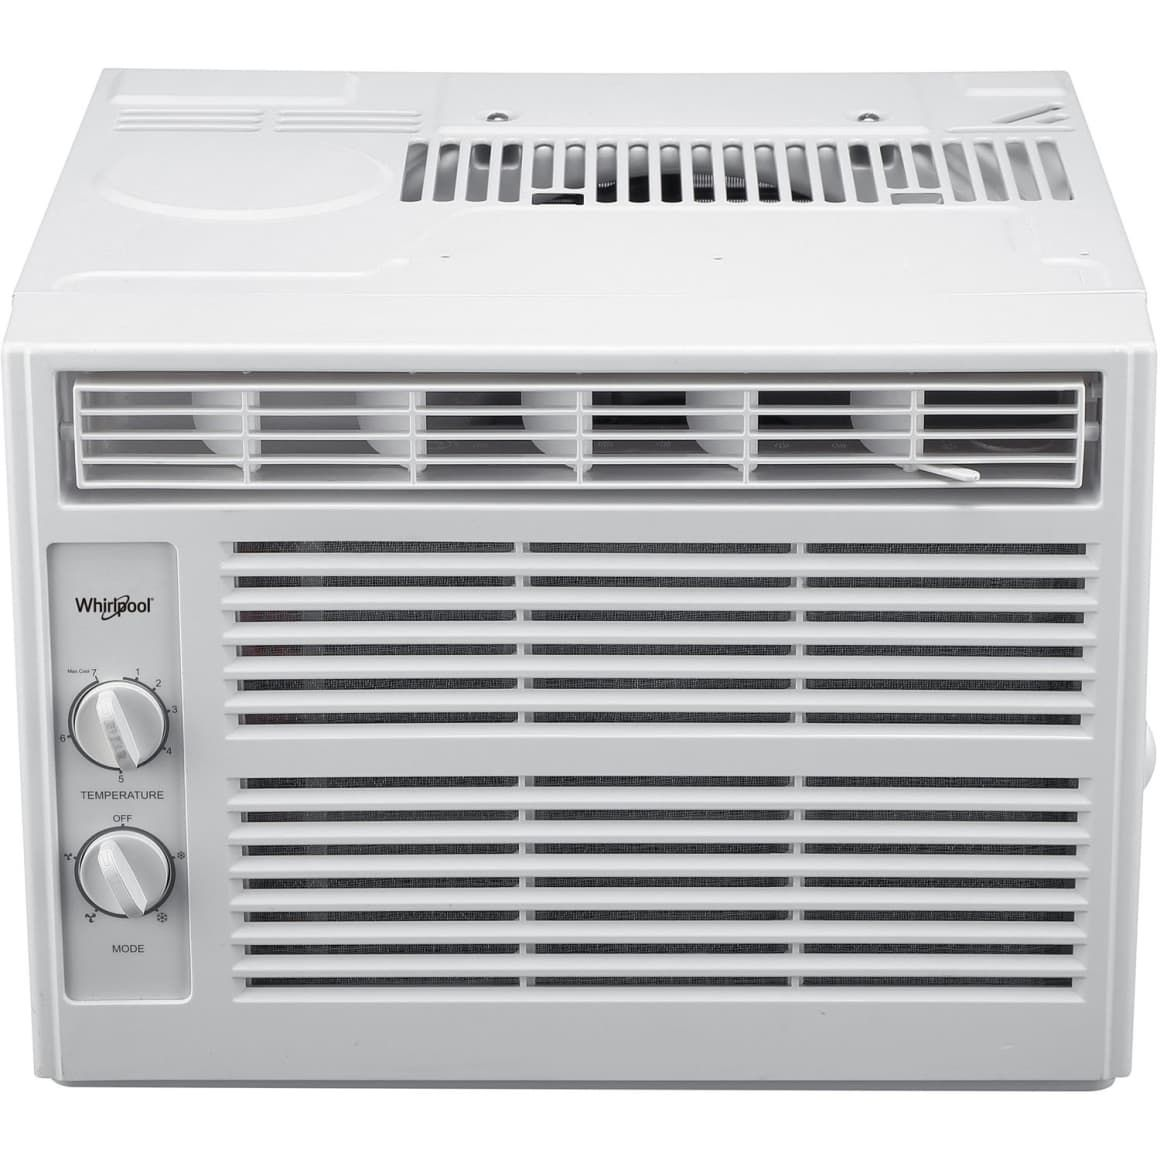 The Best Window Ac Units To Keep Your Home Air Conditioned Apartment Therapy Window Air Conditioner Best Window Air Conditioner Air Conditioner